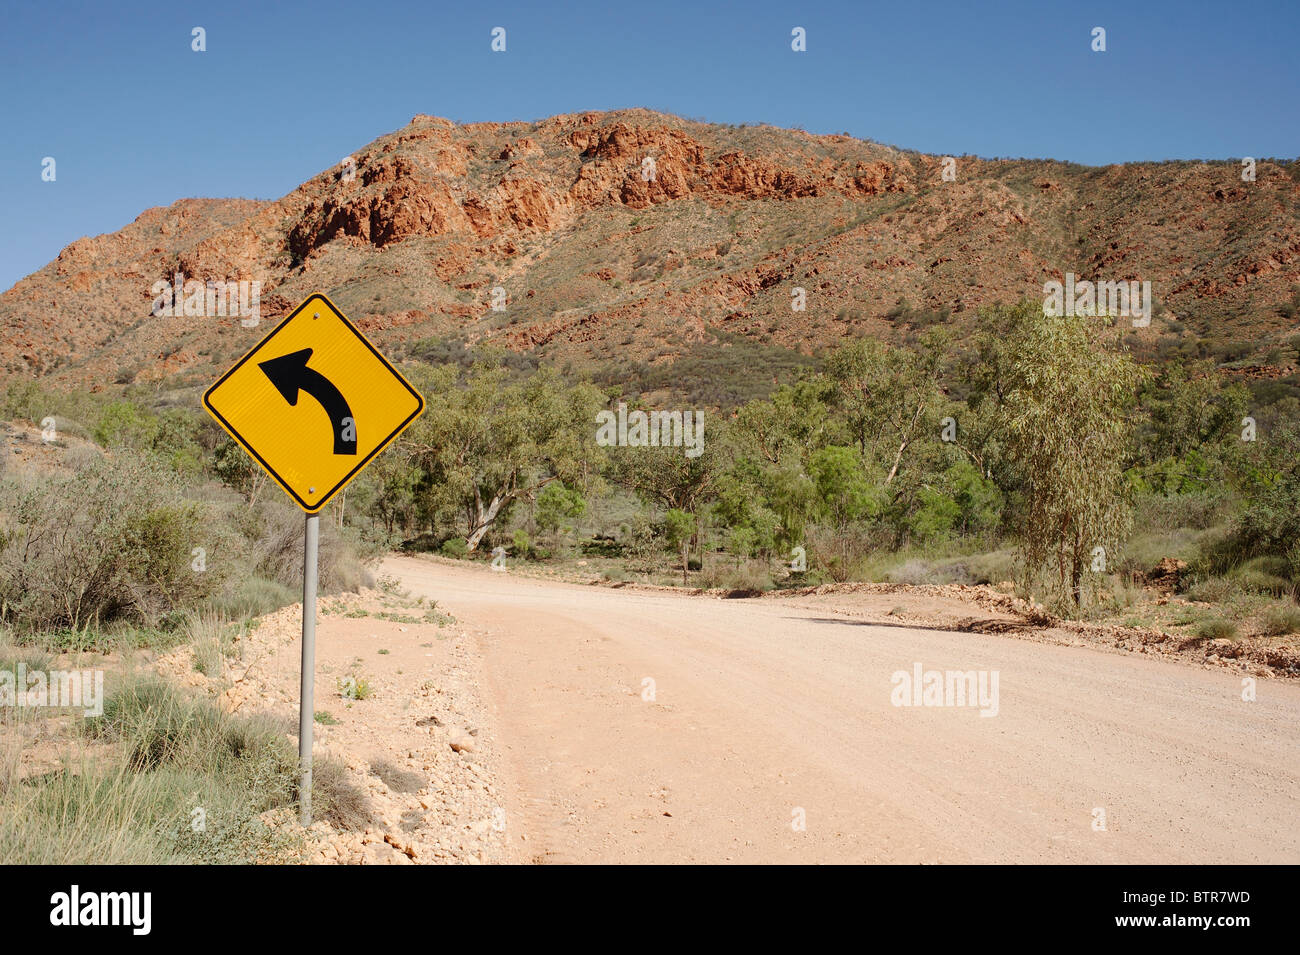 Australia, N'Dhala Gorge, Road with Curve sign - Stock Image